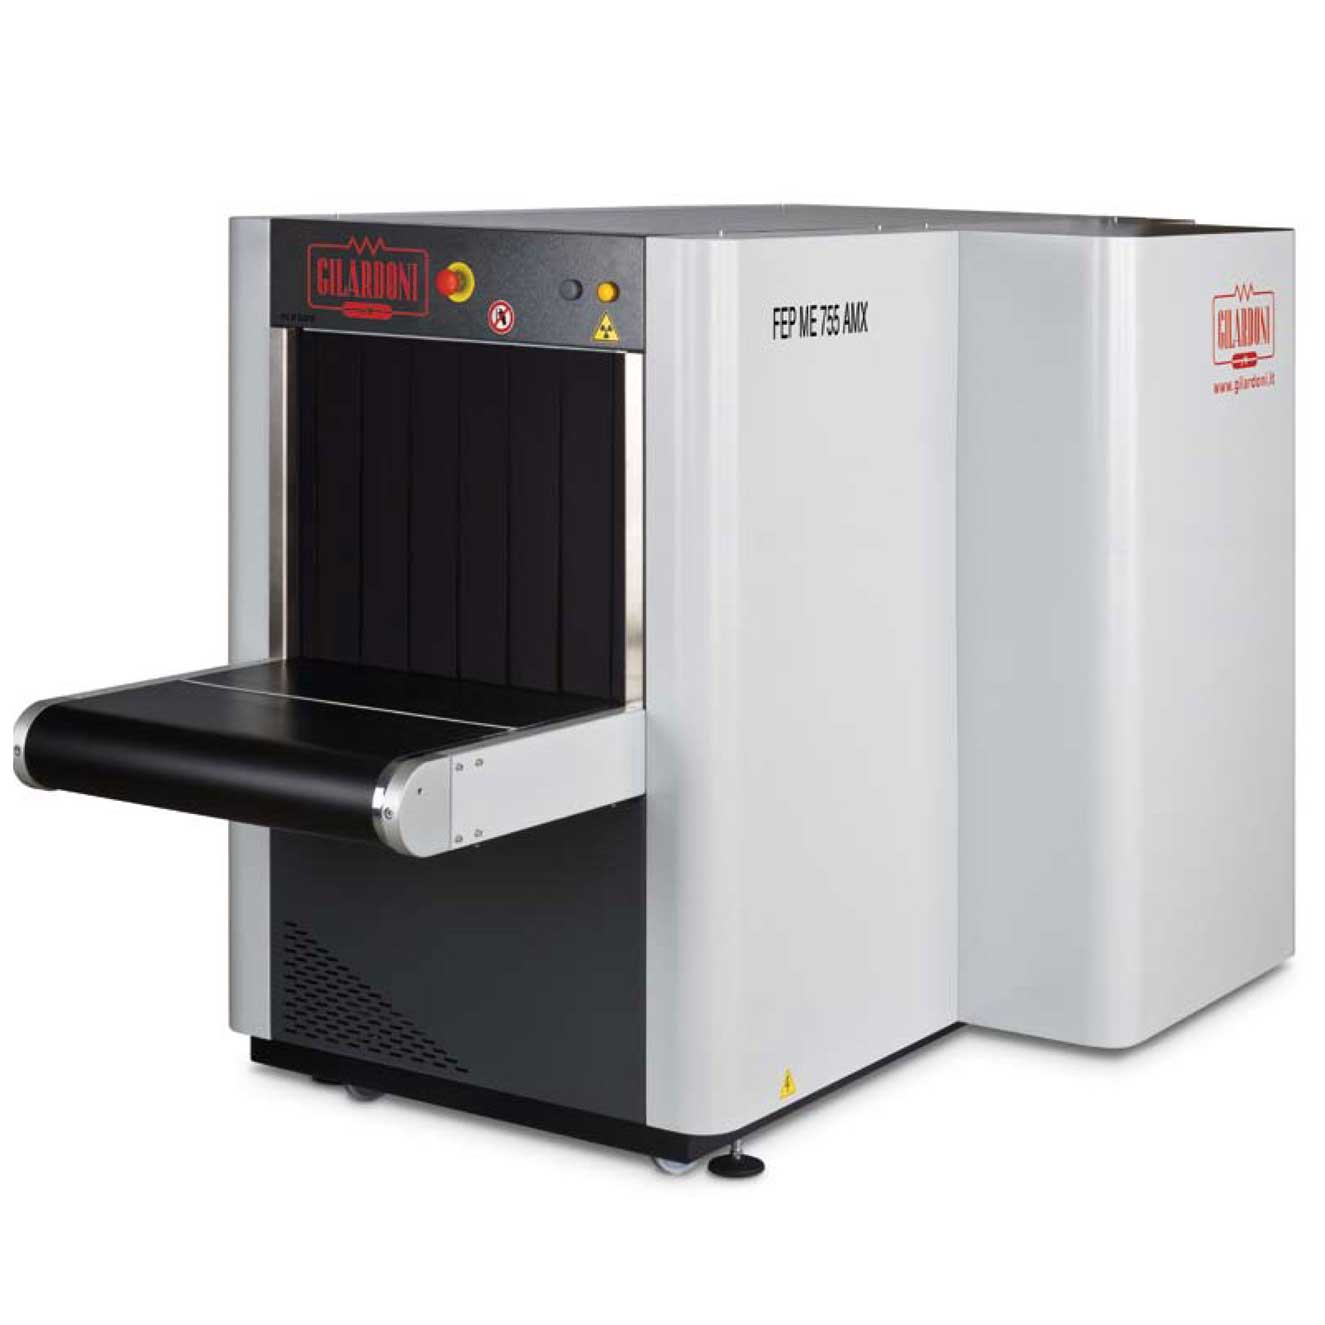 Security - X -Ray Solutions - Checkpoint Solution - Fep Me 755 AMX